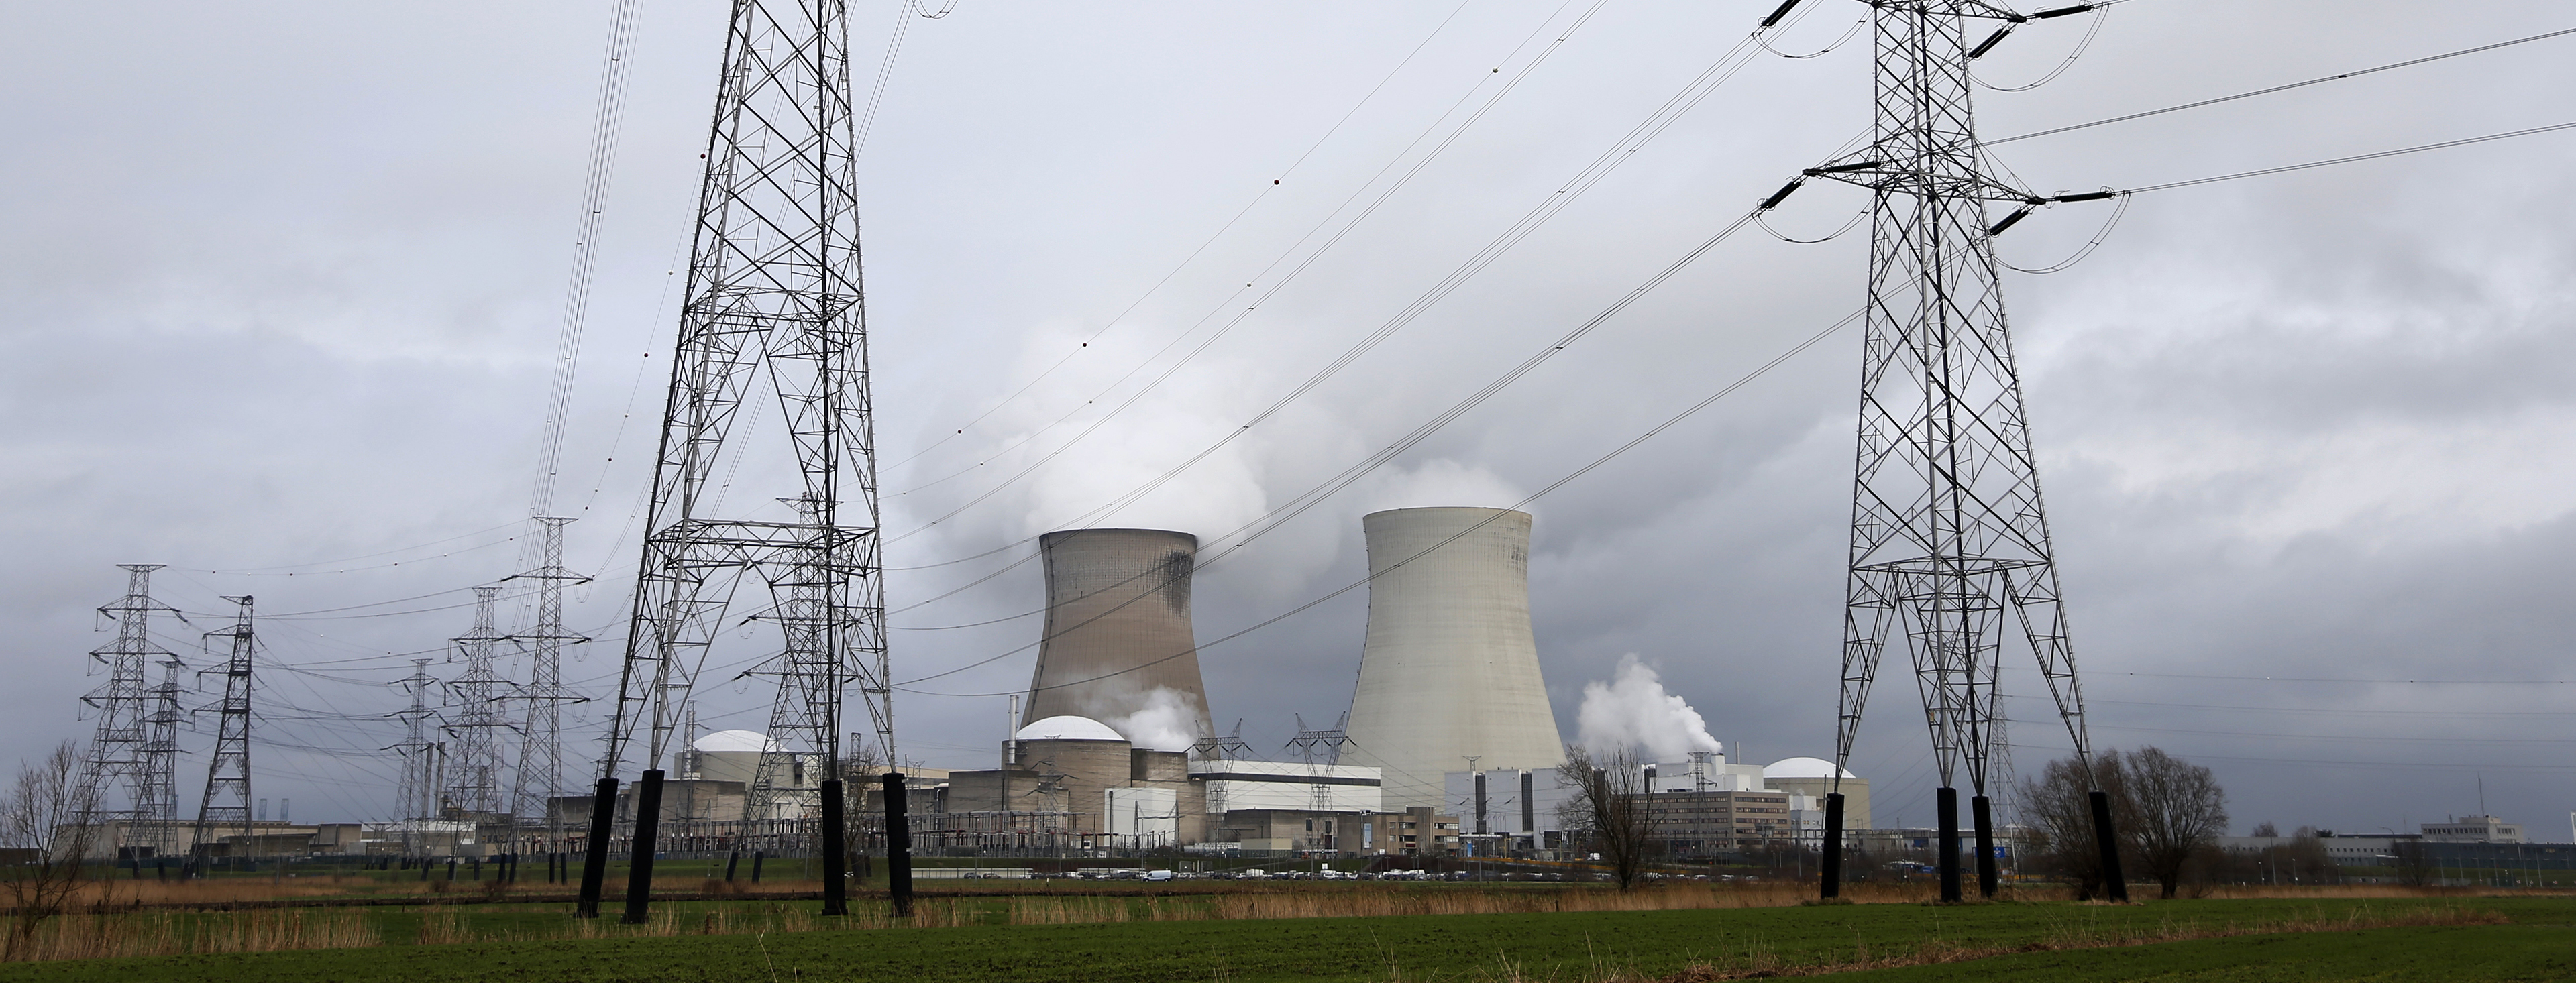 High-voltage power lines are seen next to cooling towers of Doel's nuclear plant of Electrabel in Doel near Antwerp